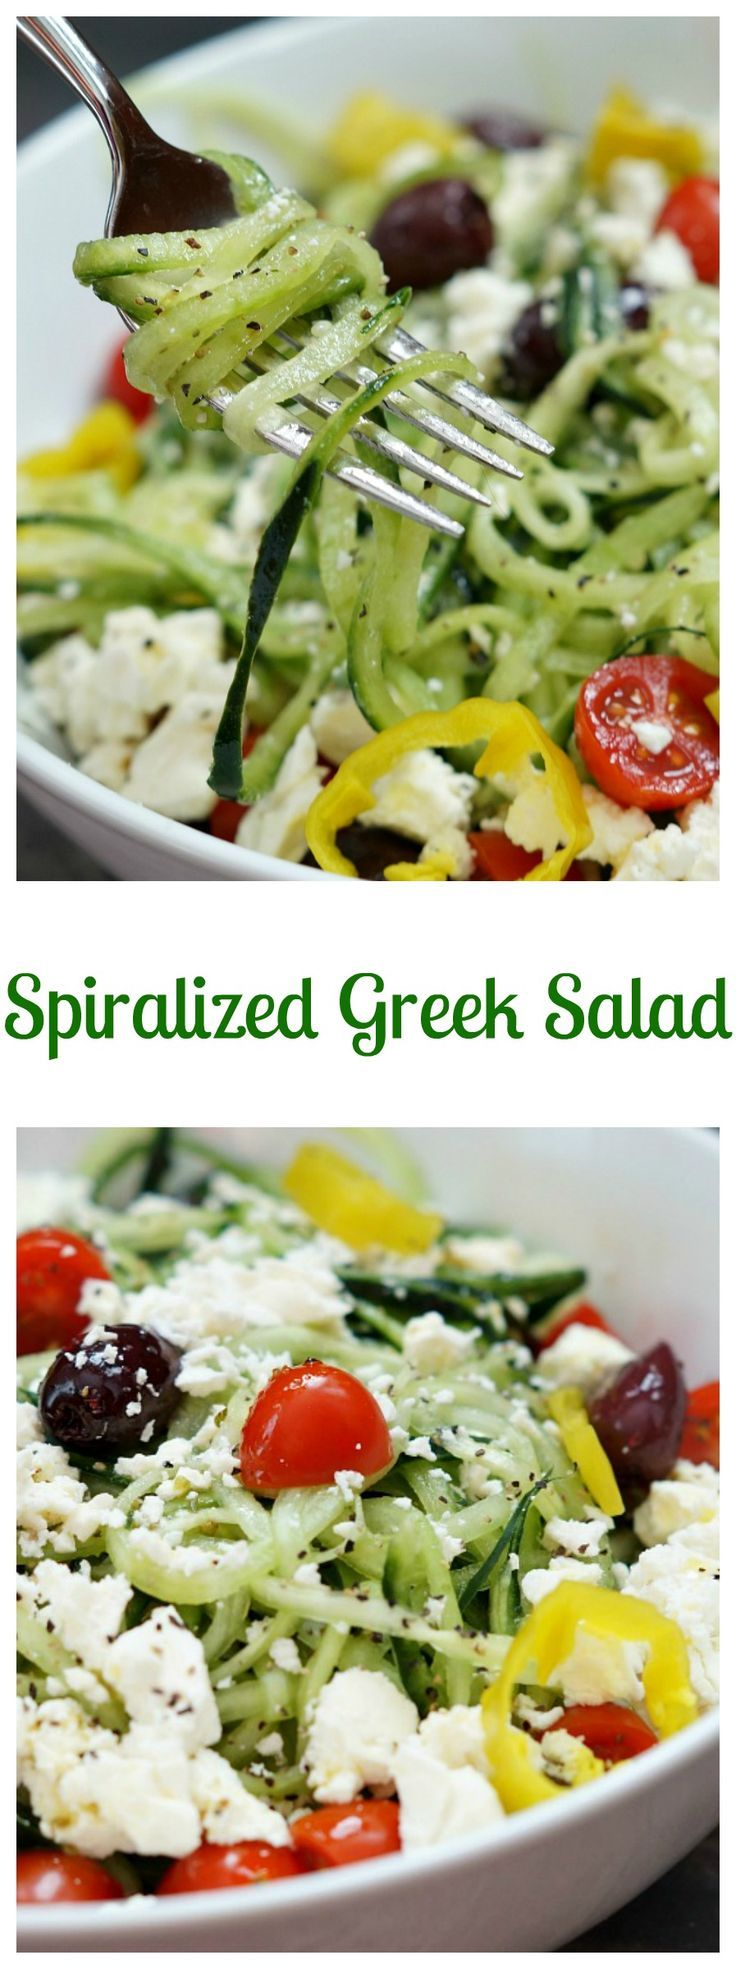 Spiralized Greek Salad - Old House to New Home